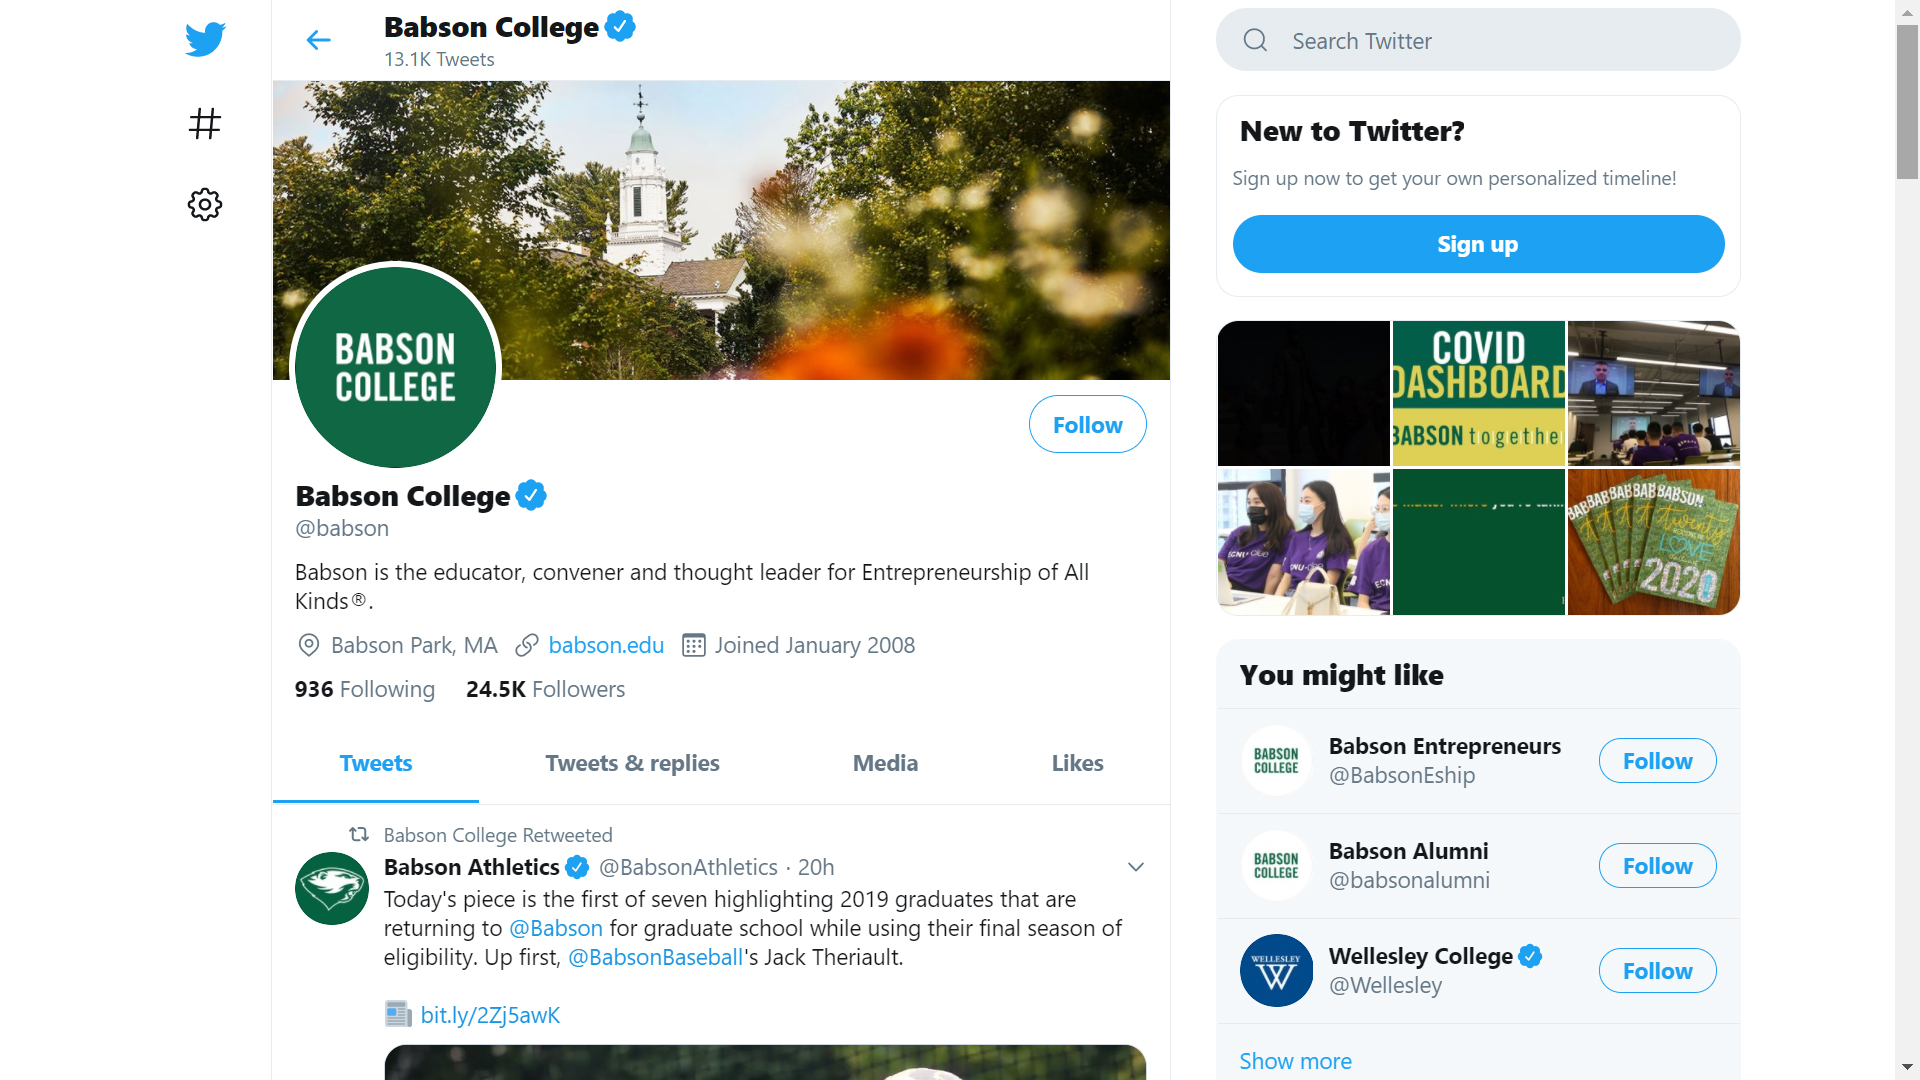 Babson College on Twitter